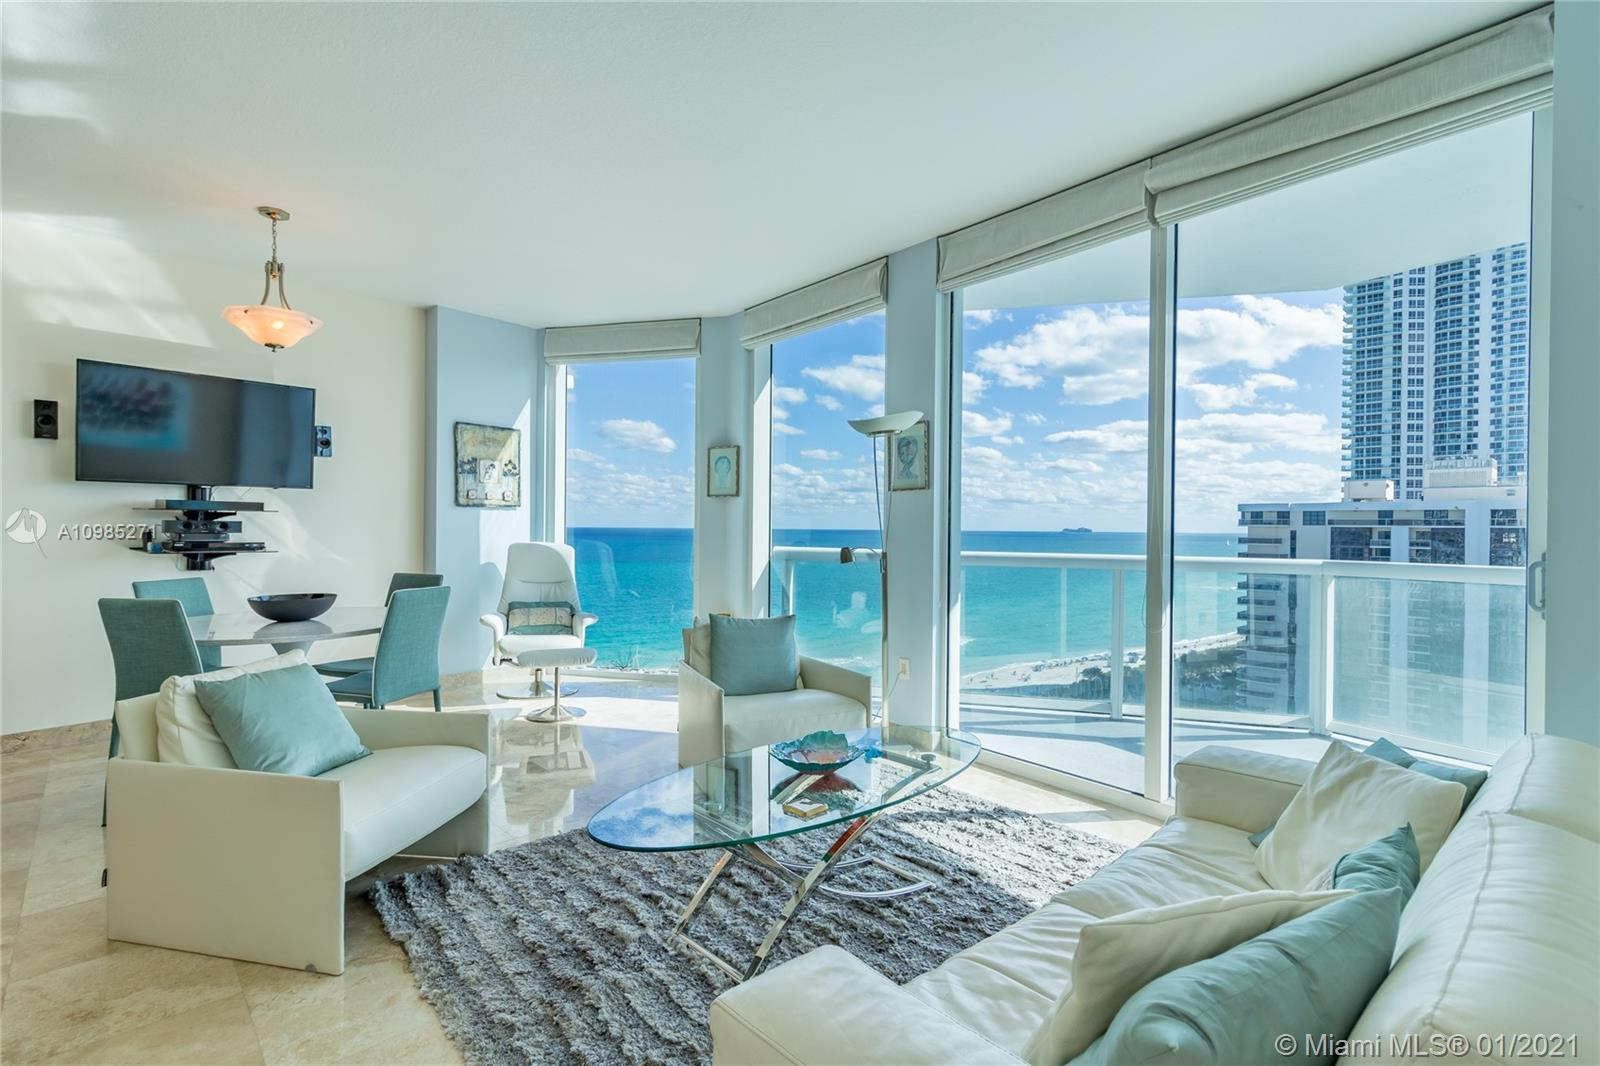 Direct Ocean, Bay & City views from this very competitively priced residence at Bel Aire on the Ocea